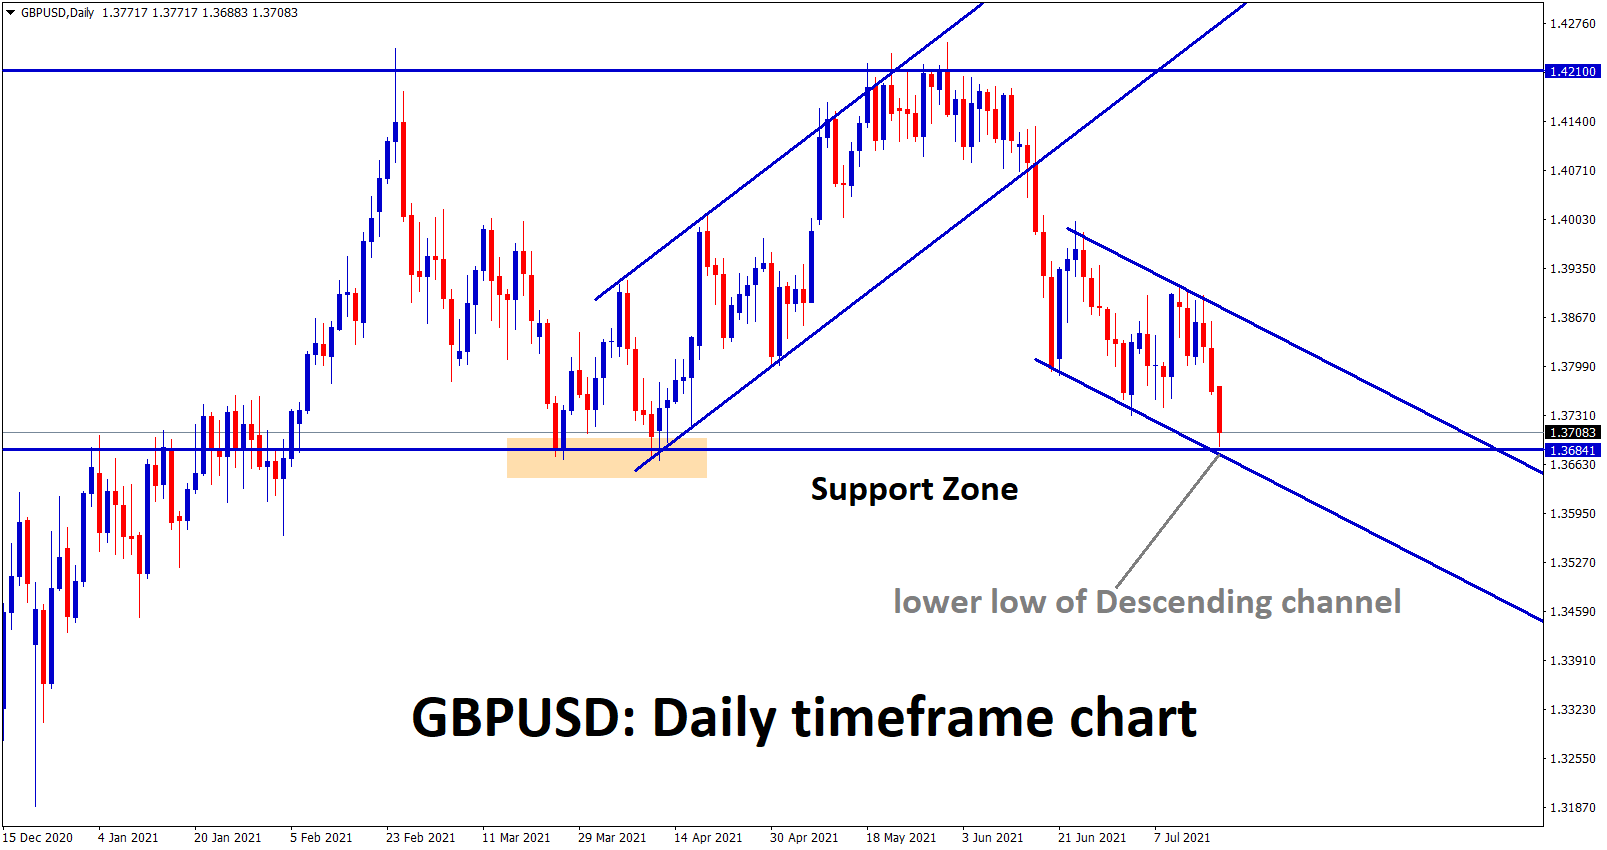 GBPUSD hits the support zone and also the lower low zone of the minor descending channel